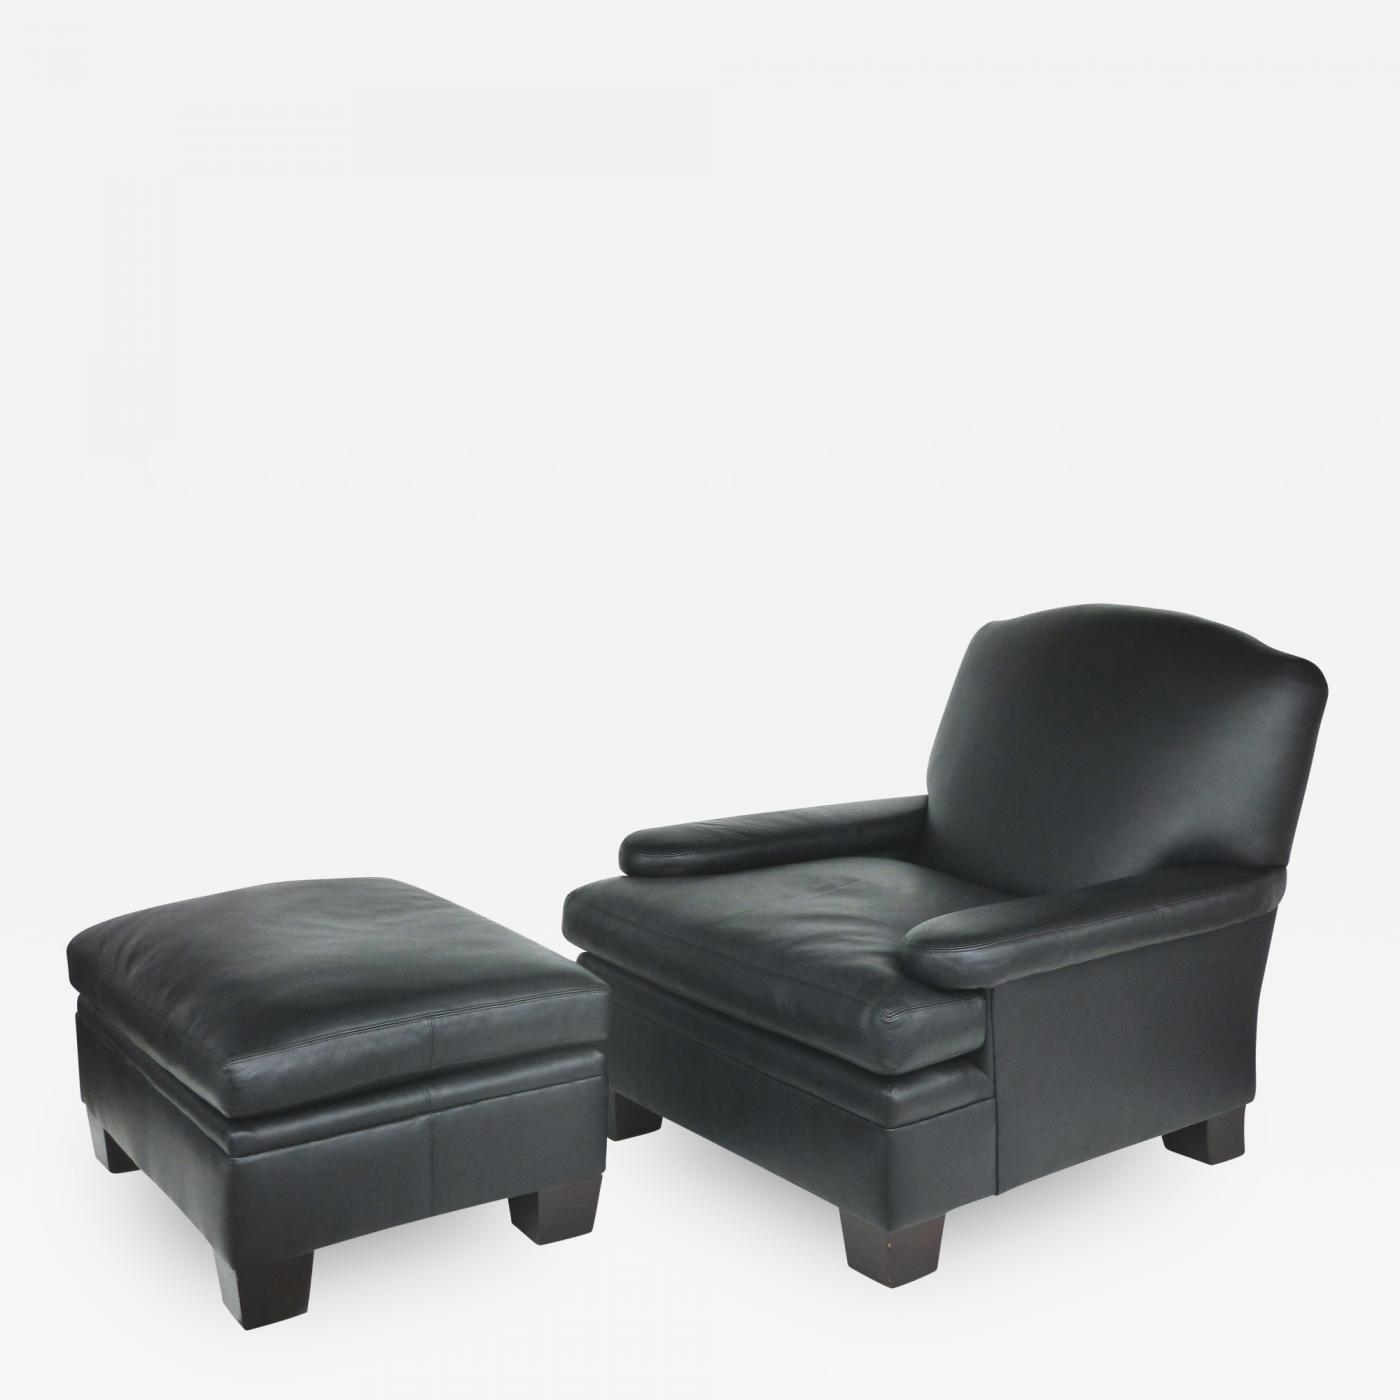 Ralph Lauren - Ralph Lauren London Leather Club Chair with Matching  Ottoman, 2 Sets Available